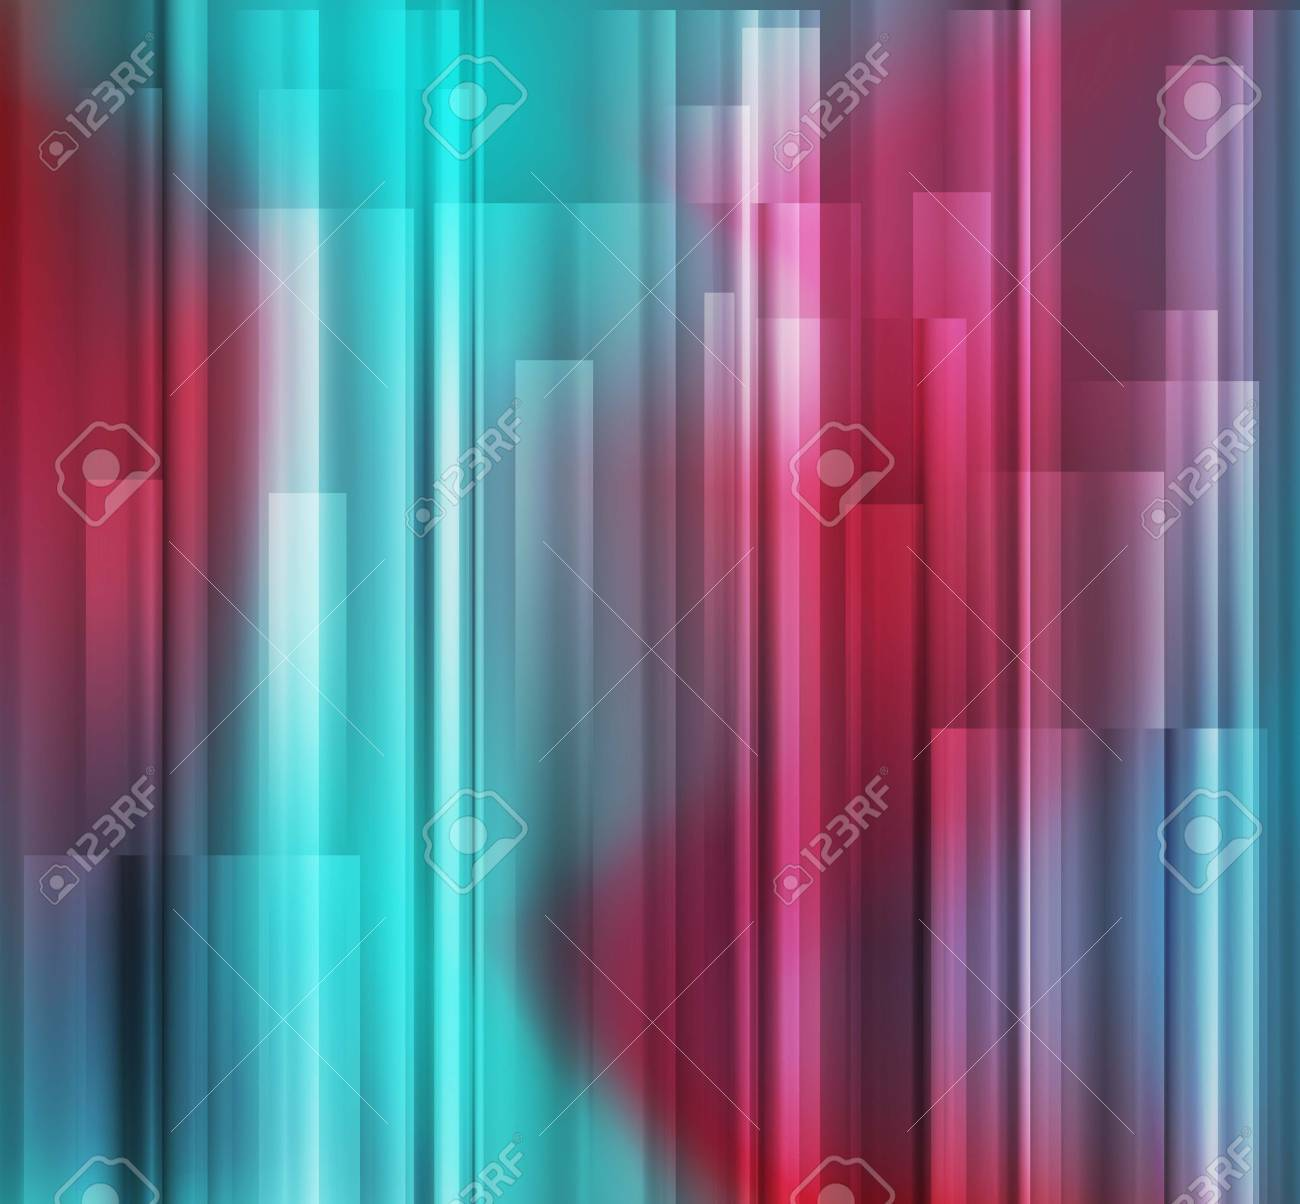 Neon abstract lines design on dark background vector concept Stock Vector - 17408026